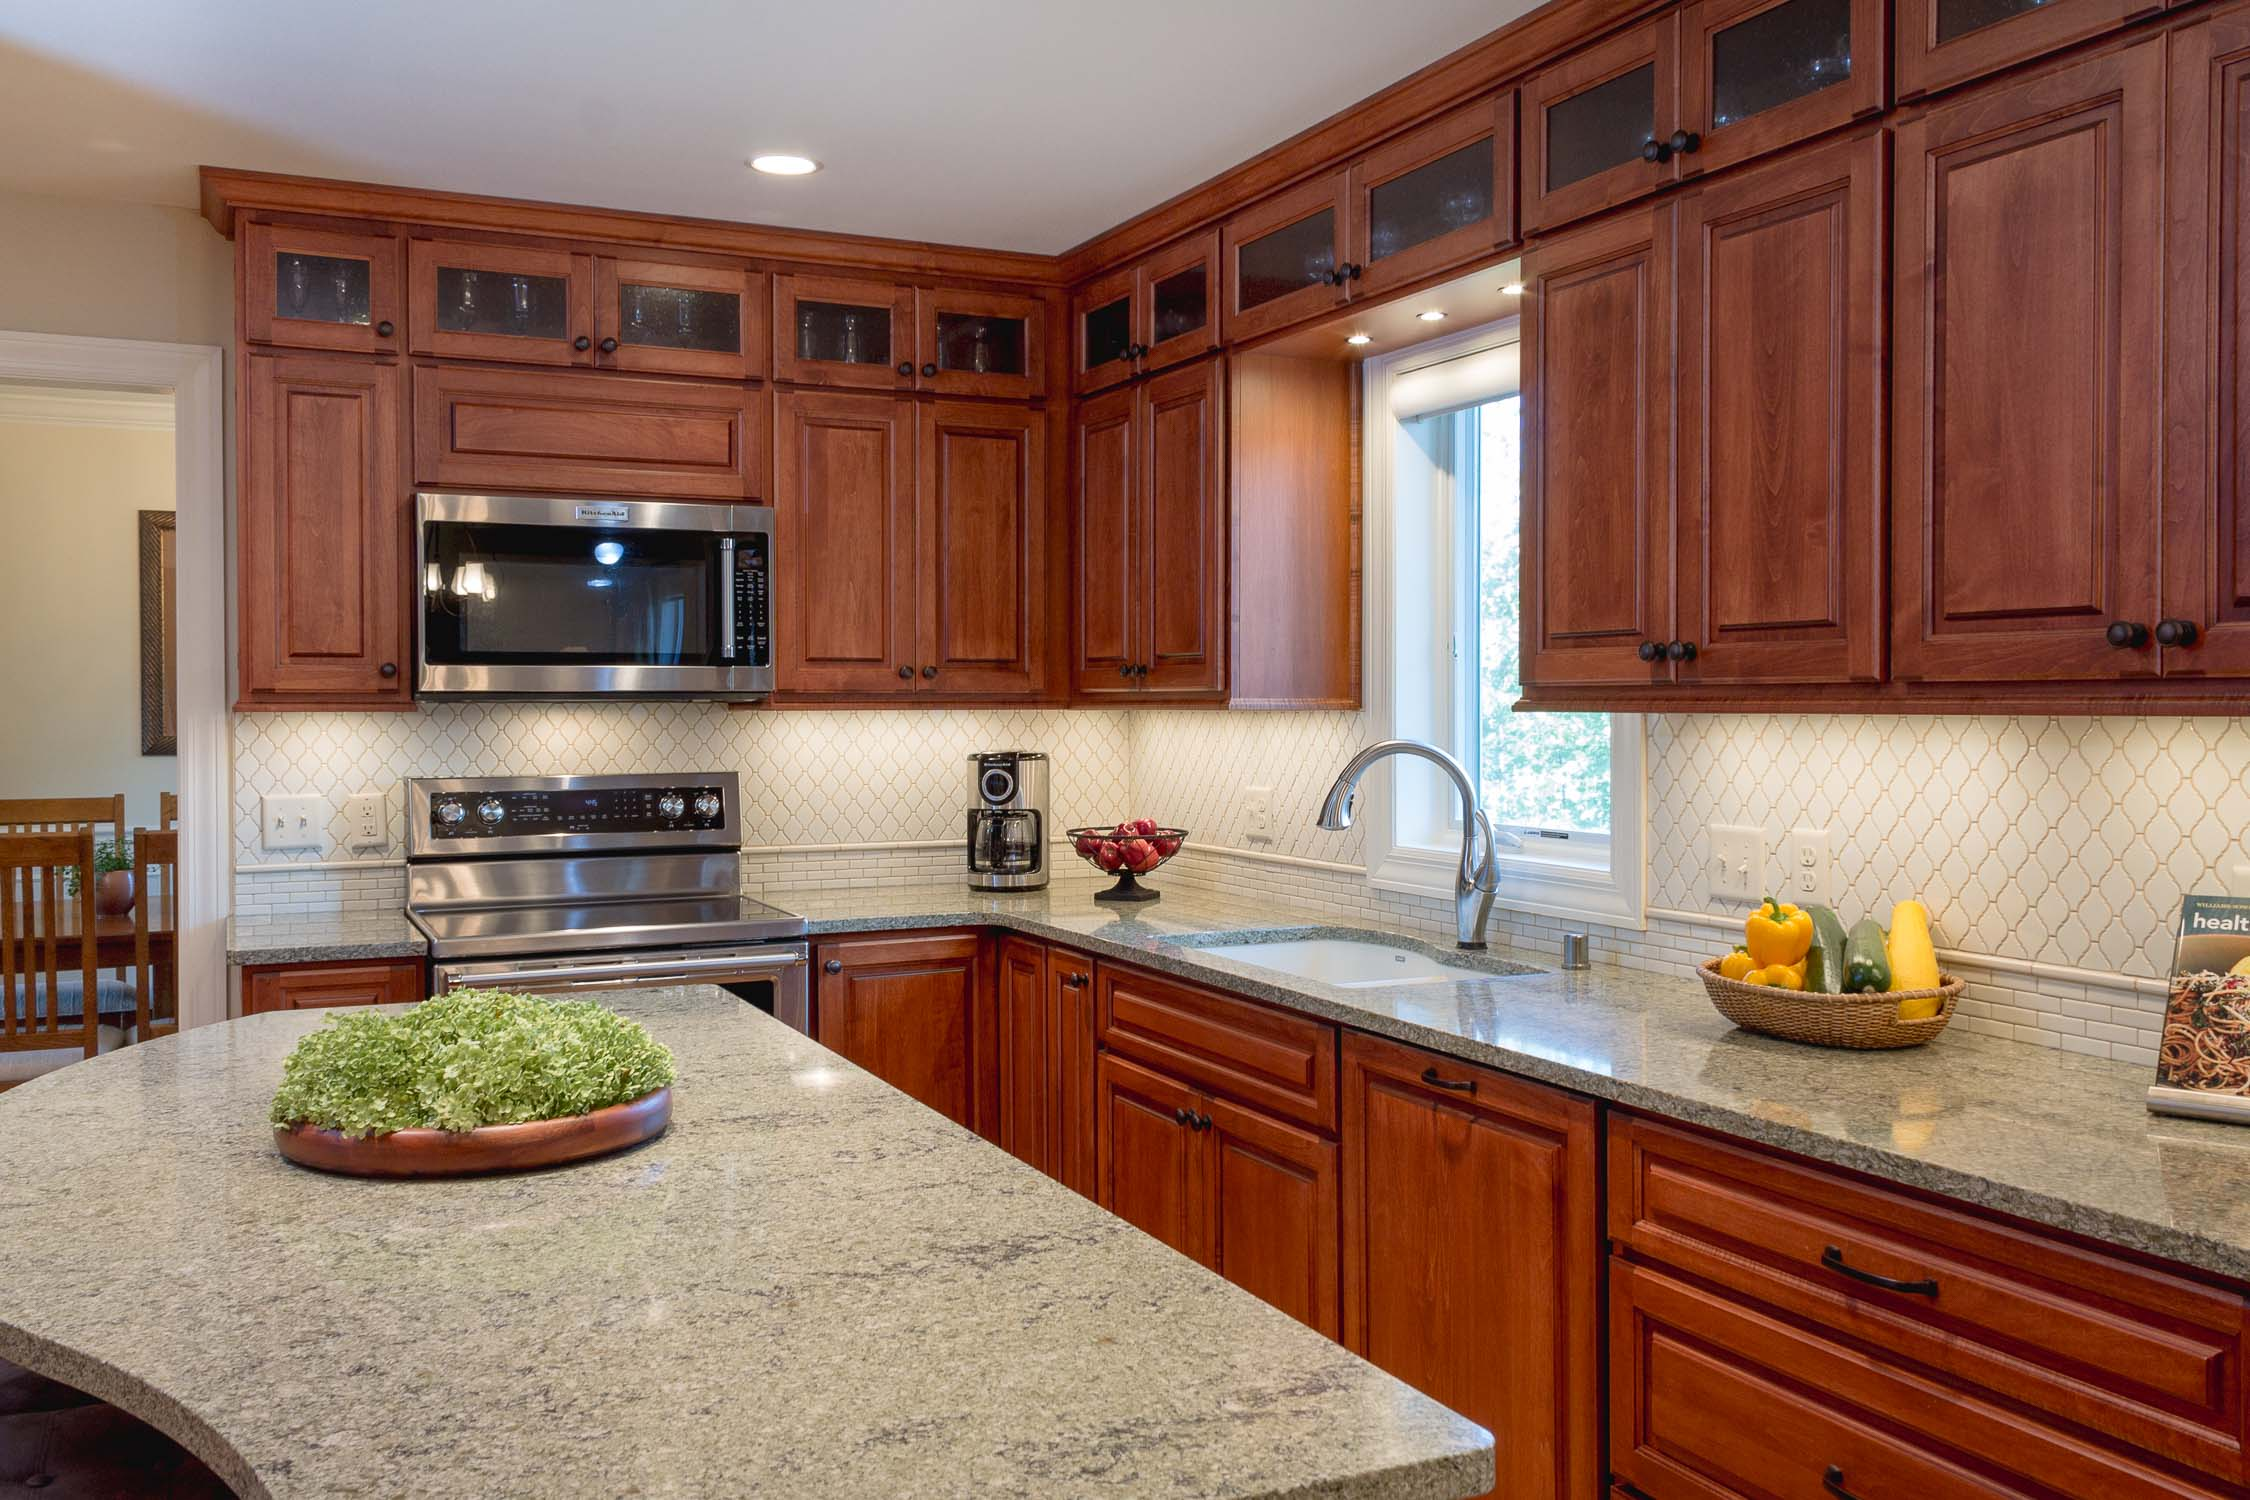 This kitchen remodeling is a NARI Madison CotY Award winning project.